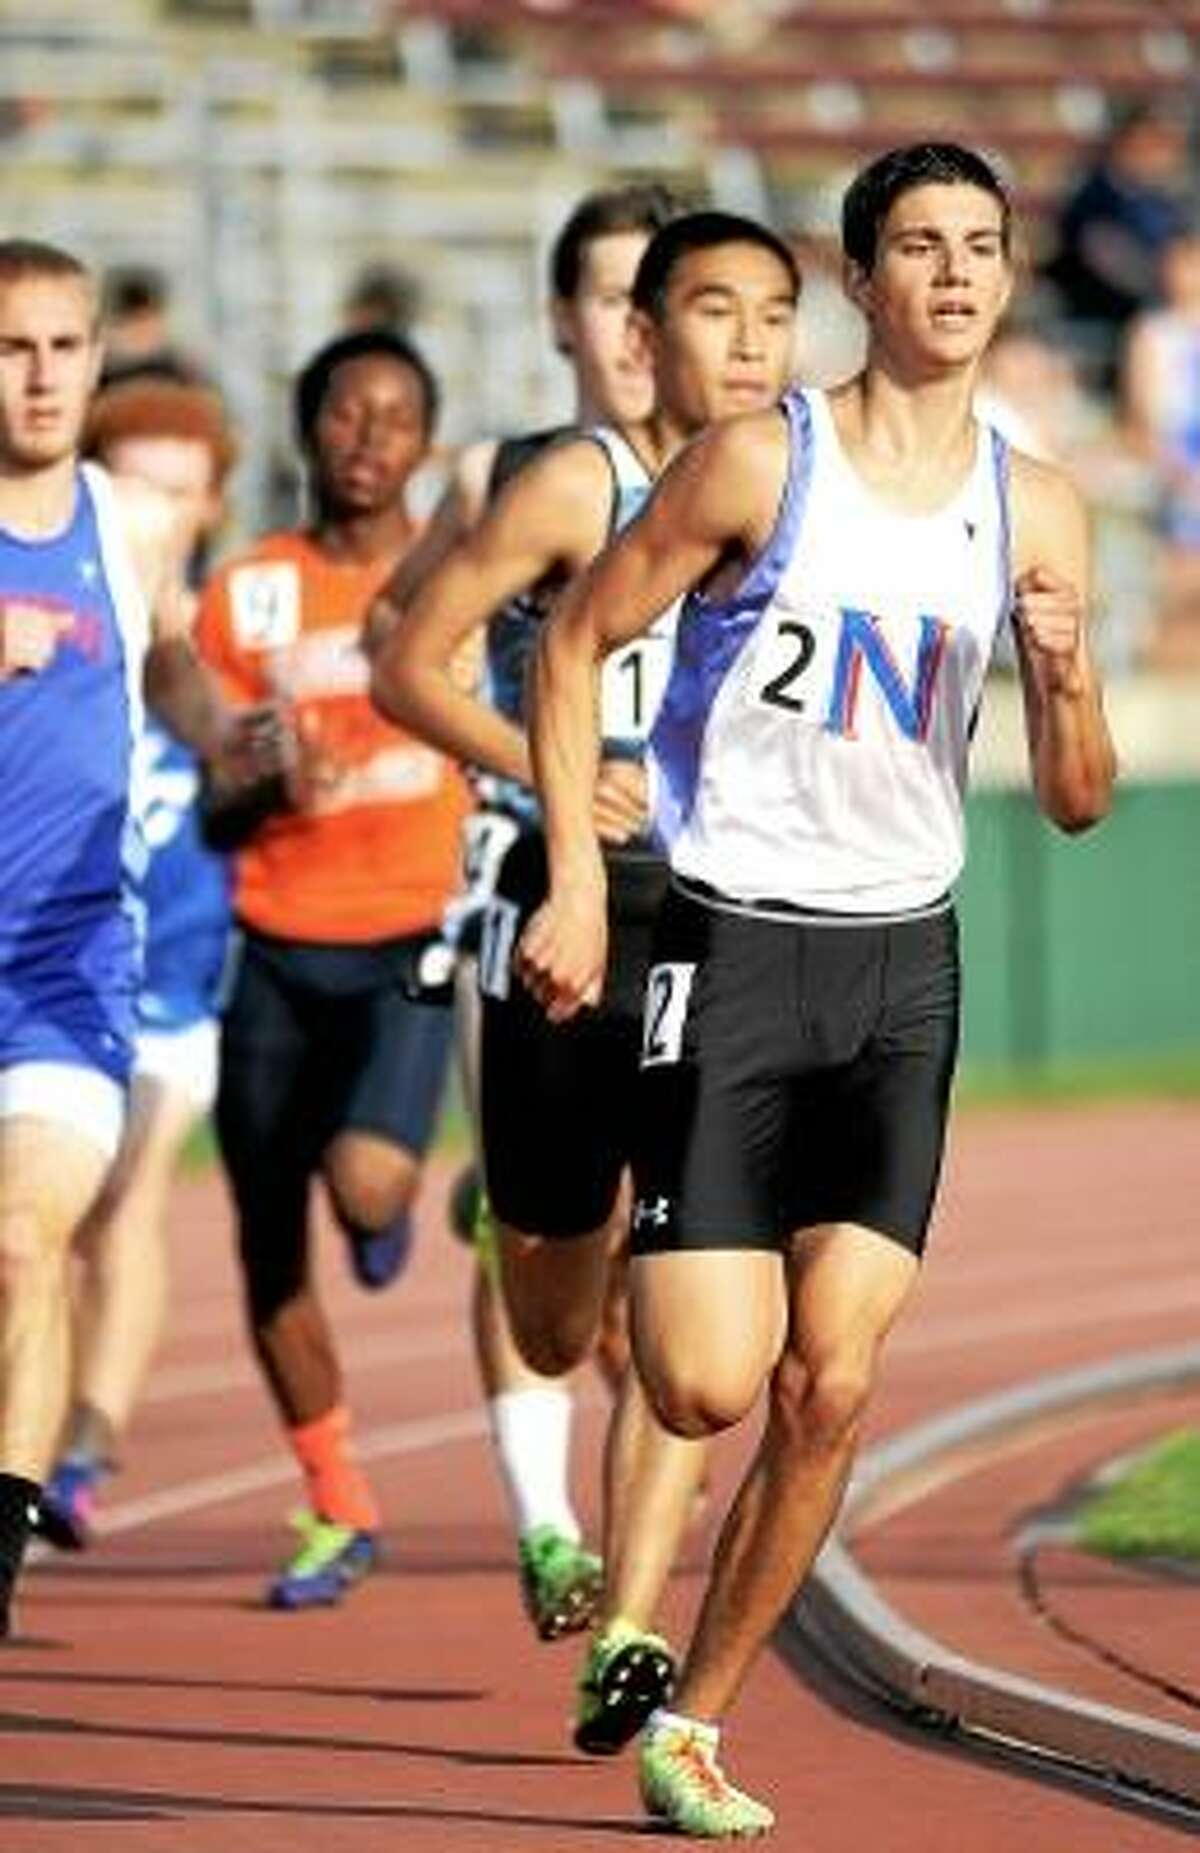 Nonnewaug senior Jonah Riolo races to first in the 800-meter run in Wednesday's Class M Track & Field Championship at Willow Brook Park in New Britain. Photo by Catherine Avalone/The Middletown Press